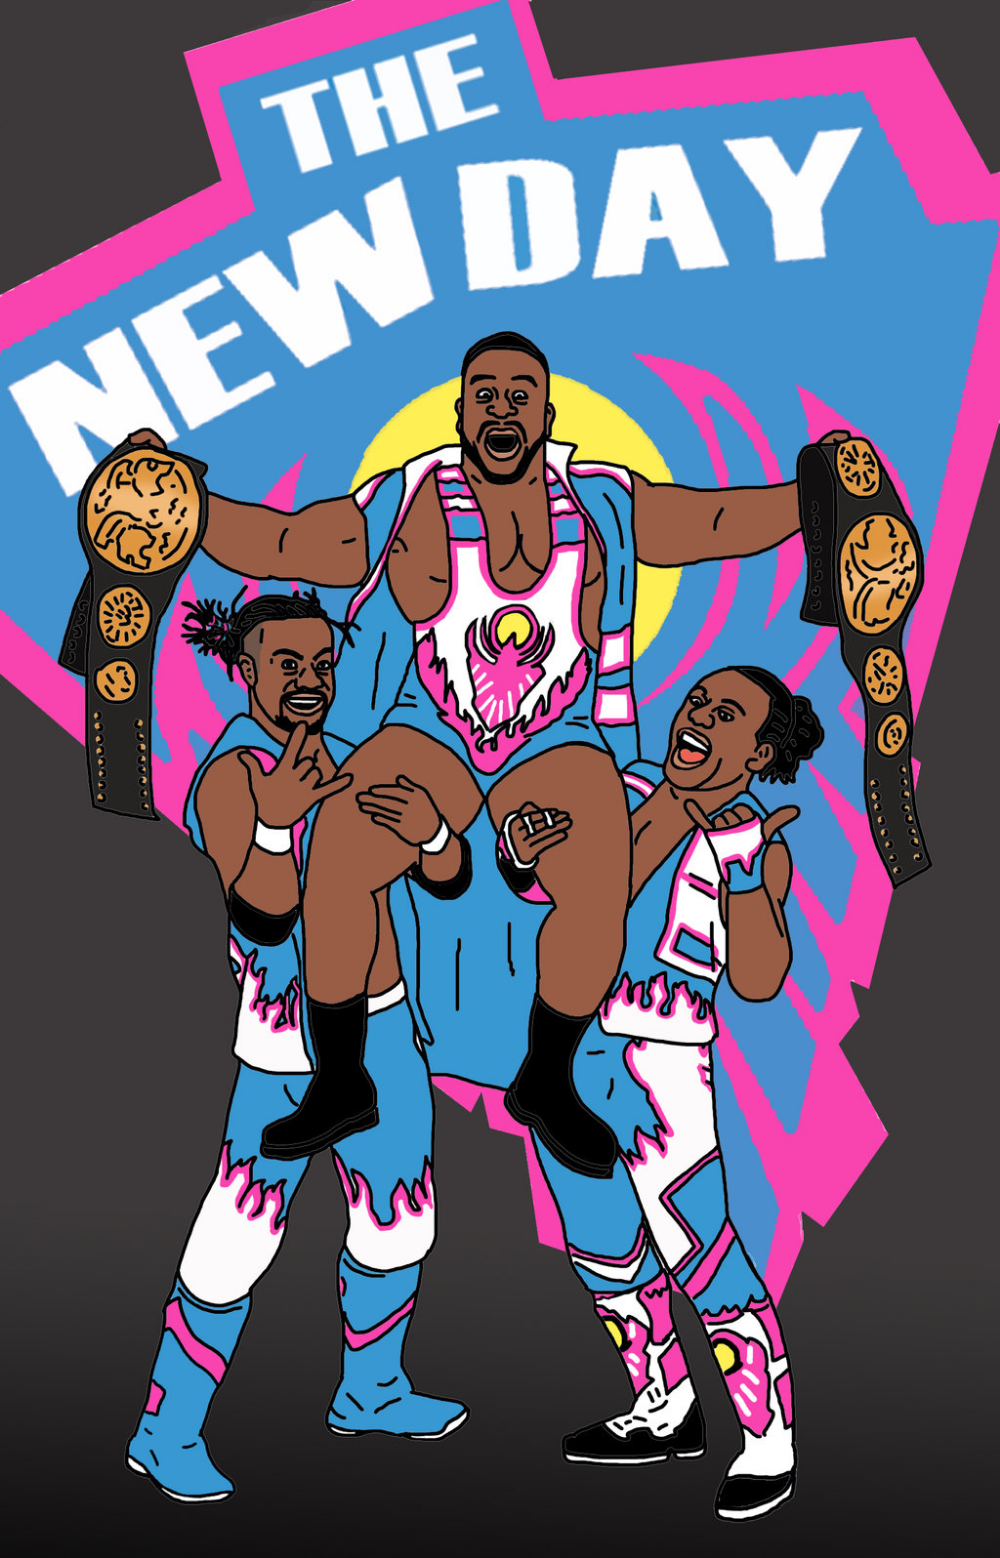 Wwe New Day Poster Culture Posters 20 Off The New Day Wwe Wwe News New Day